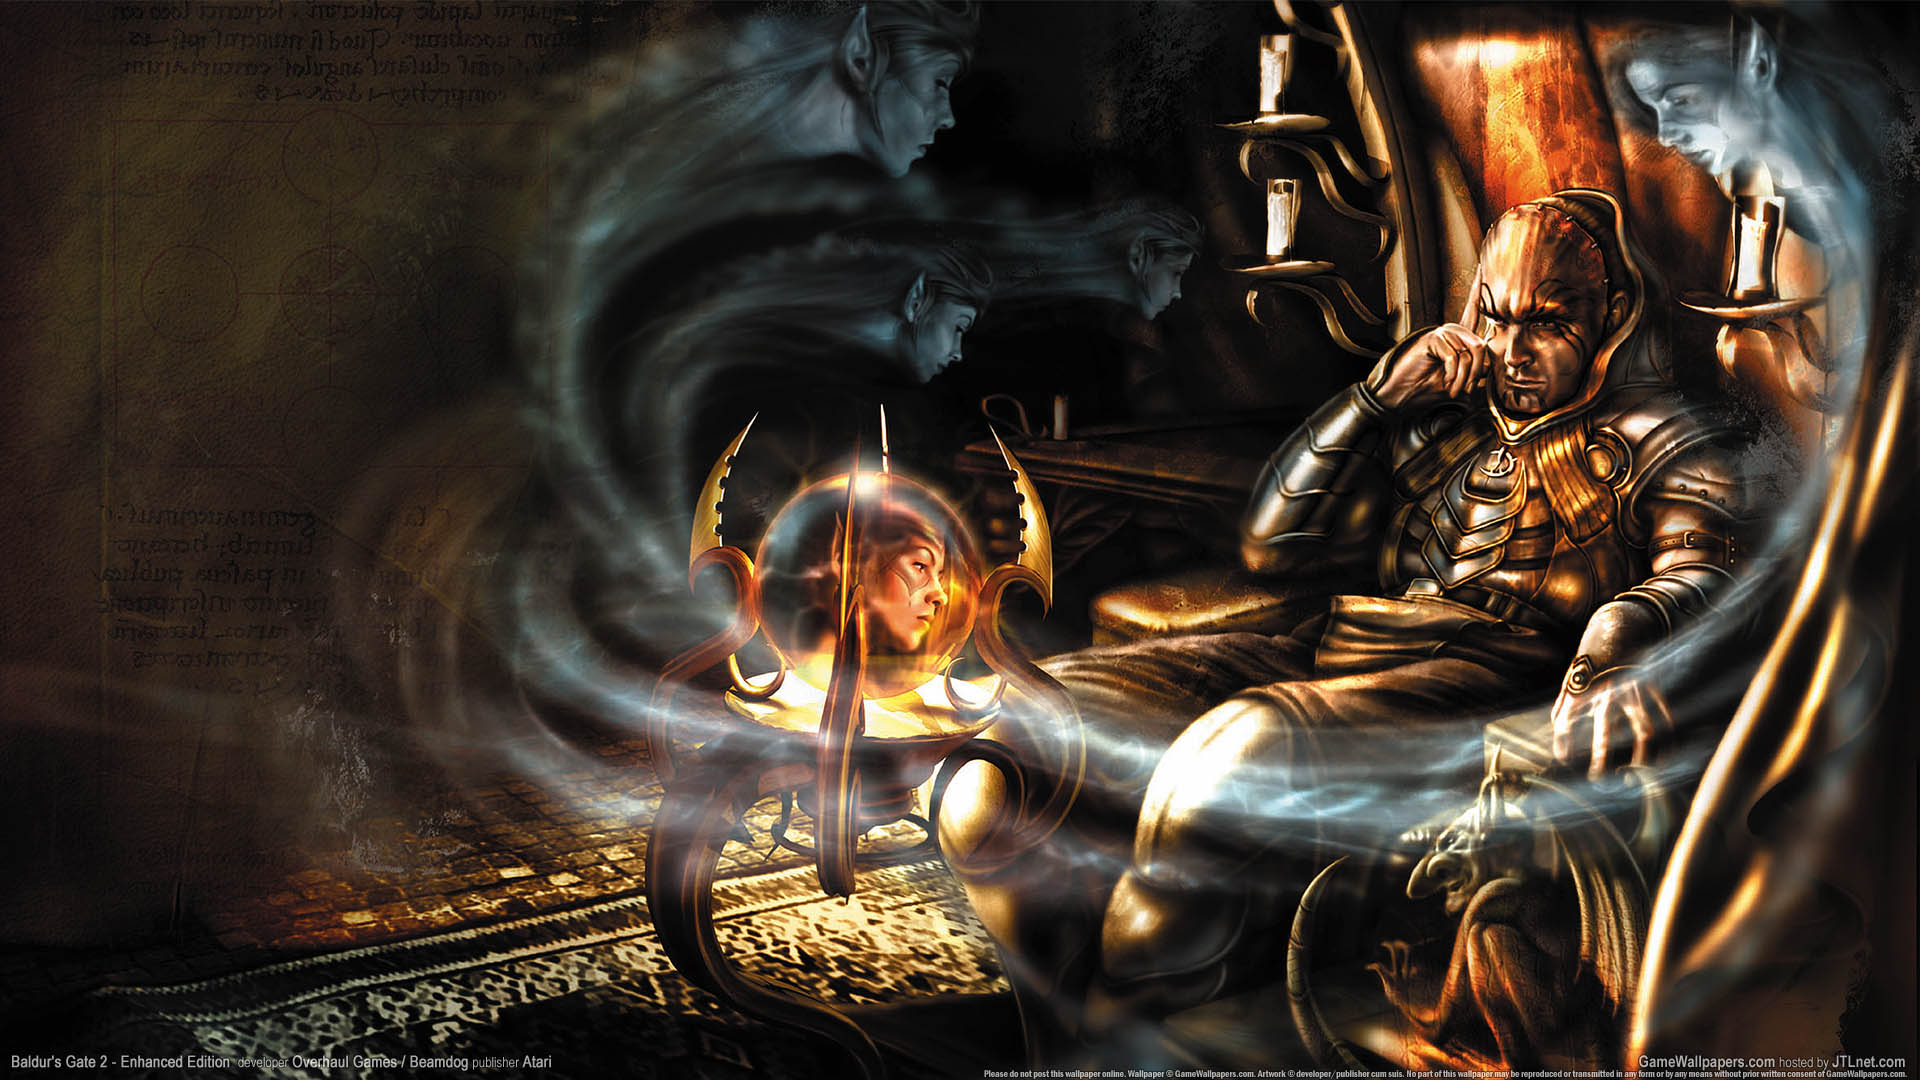 Baldur's Gate 2 - Enhanced Edition wallpaper 02 1920x1080